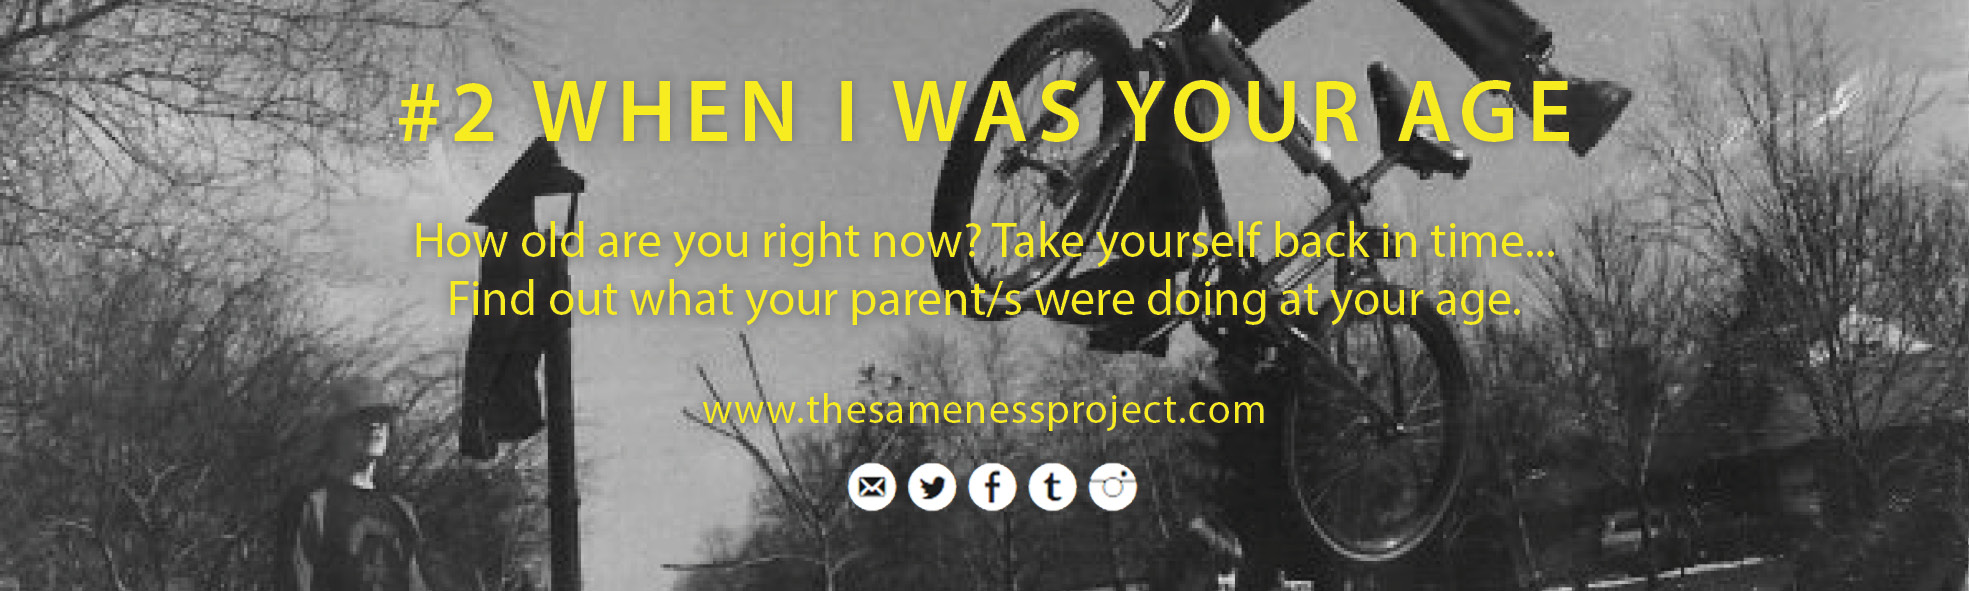 #ShareYourSameness Experiment 2 - When I was Your Age. How old are you right now? Take yourself back in time and find out what your parent/s were doing at your age.